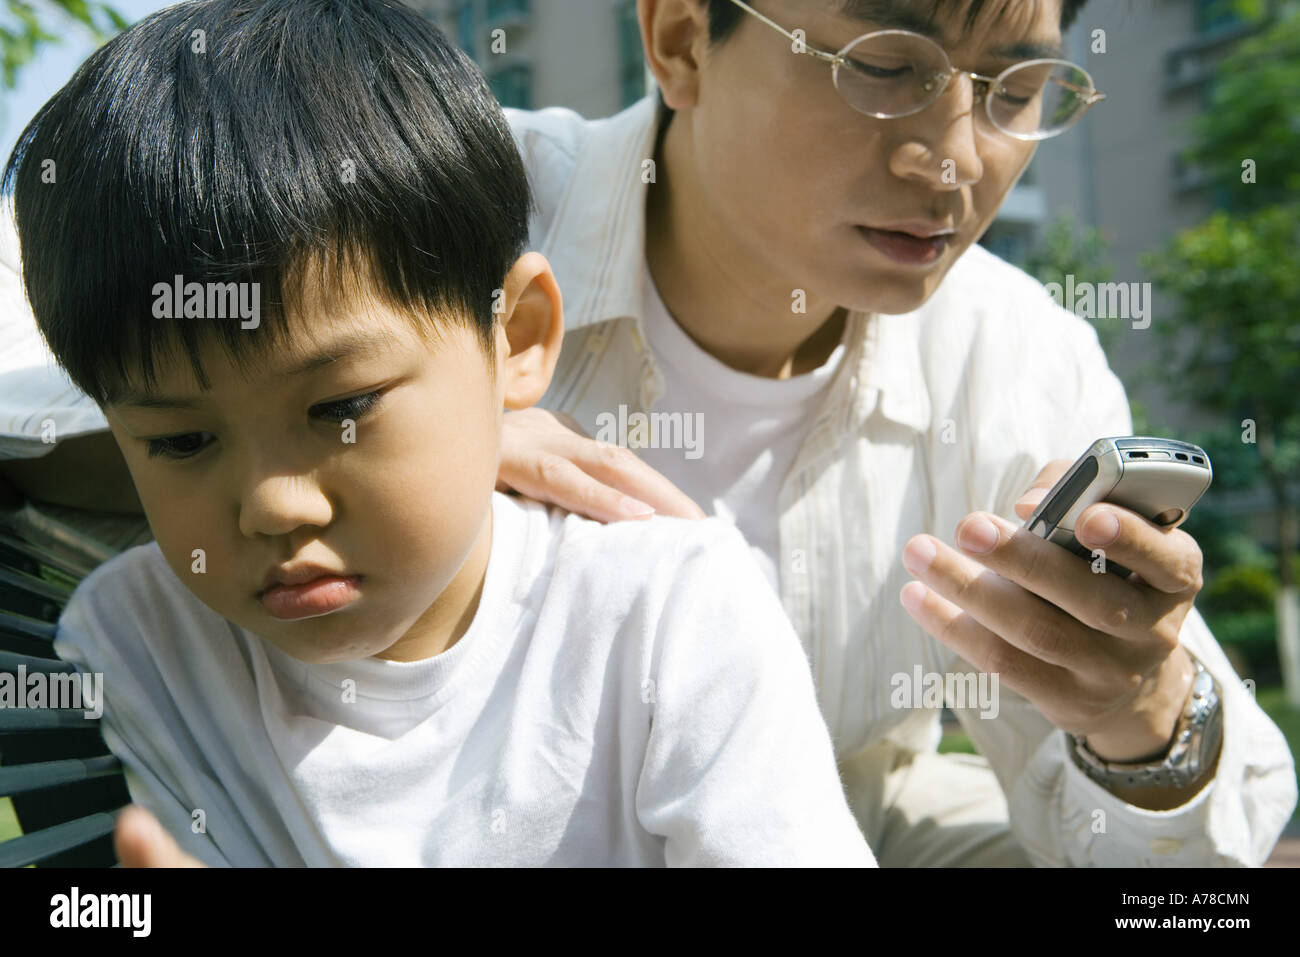 Man looking at cell phone while son looks away, frowning - Stock Image